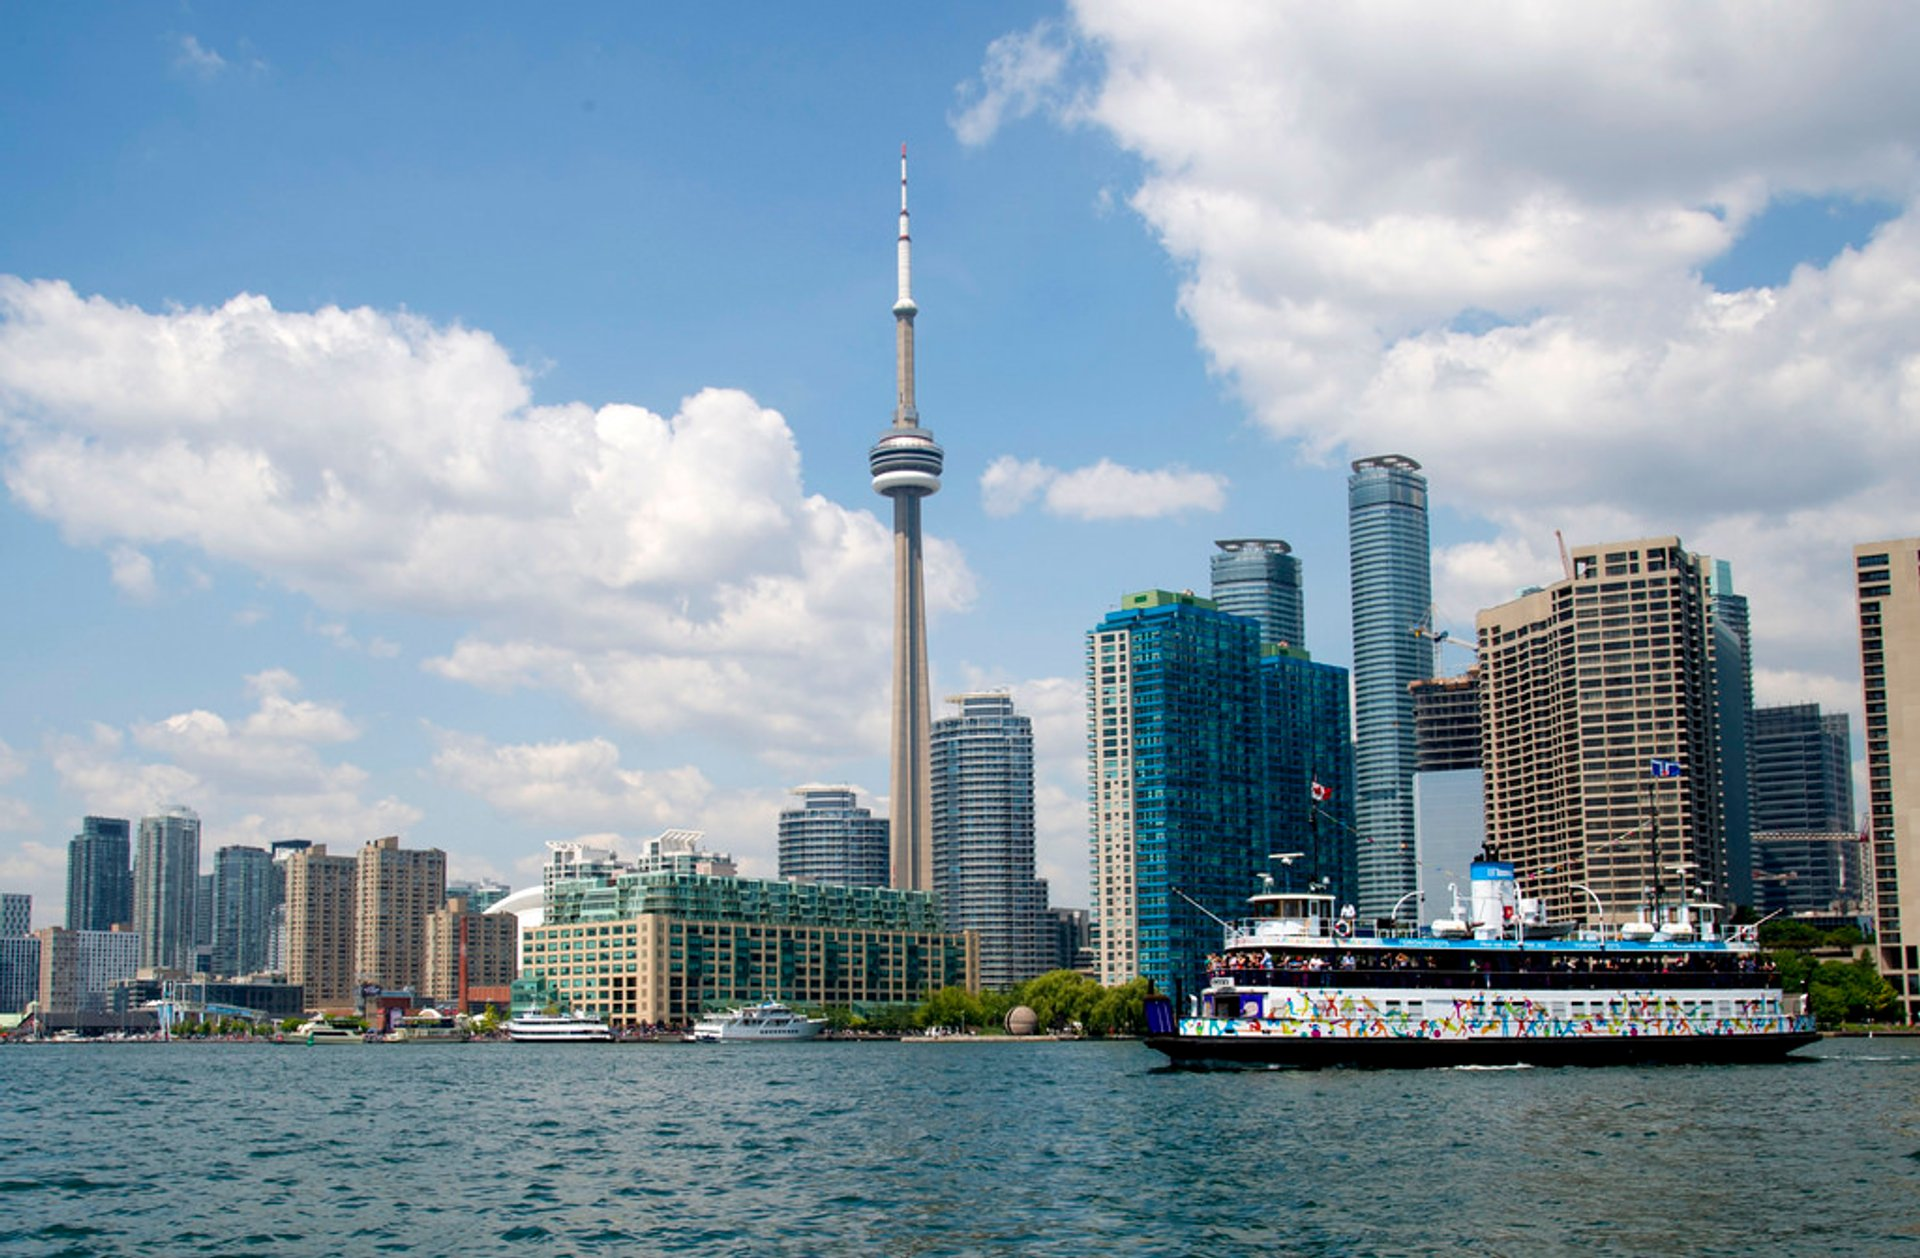 Boat Cruises in Toronto - Best Time